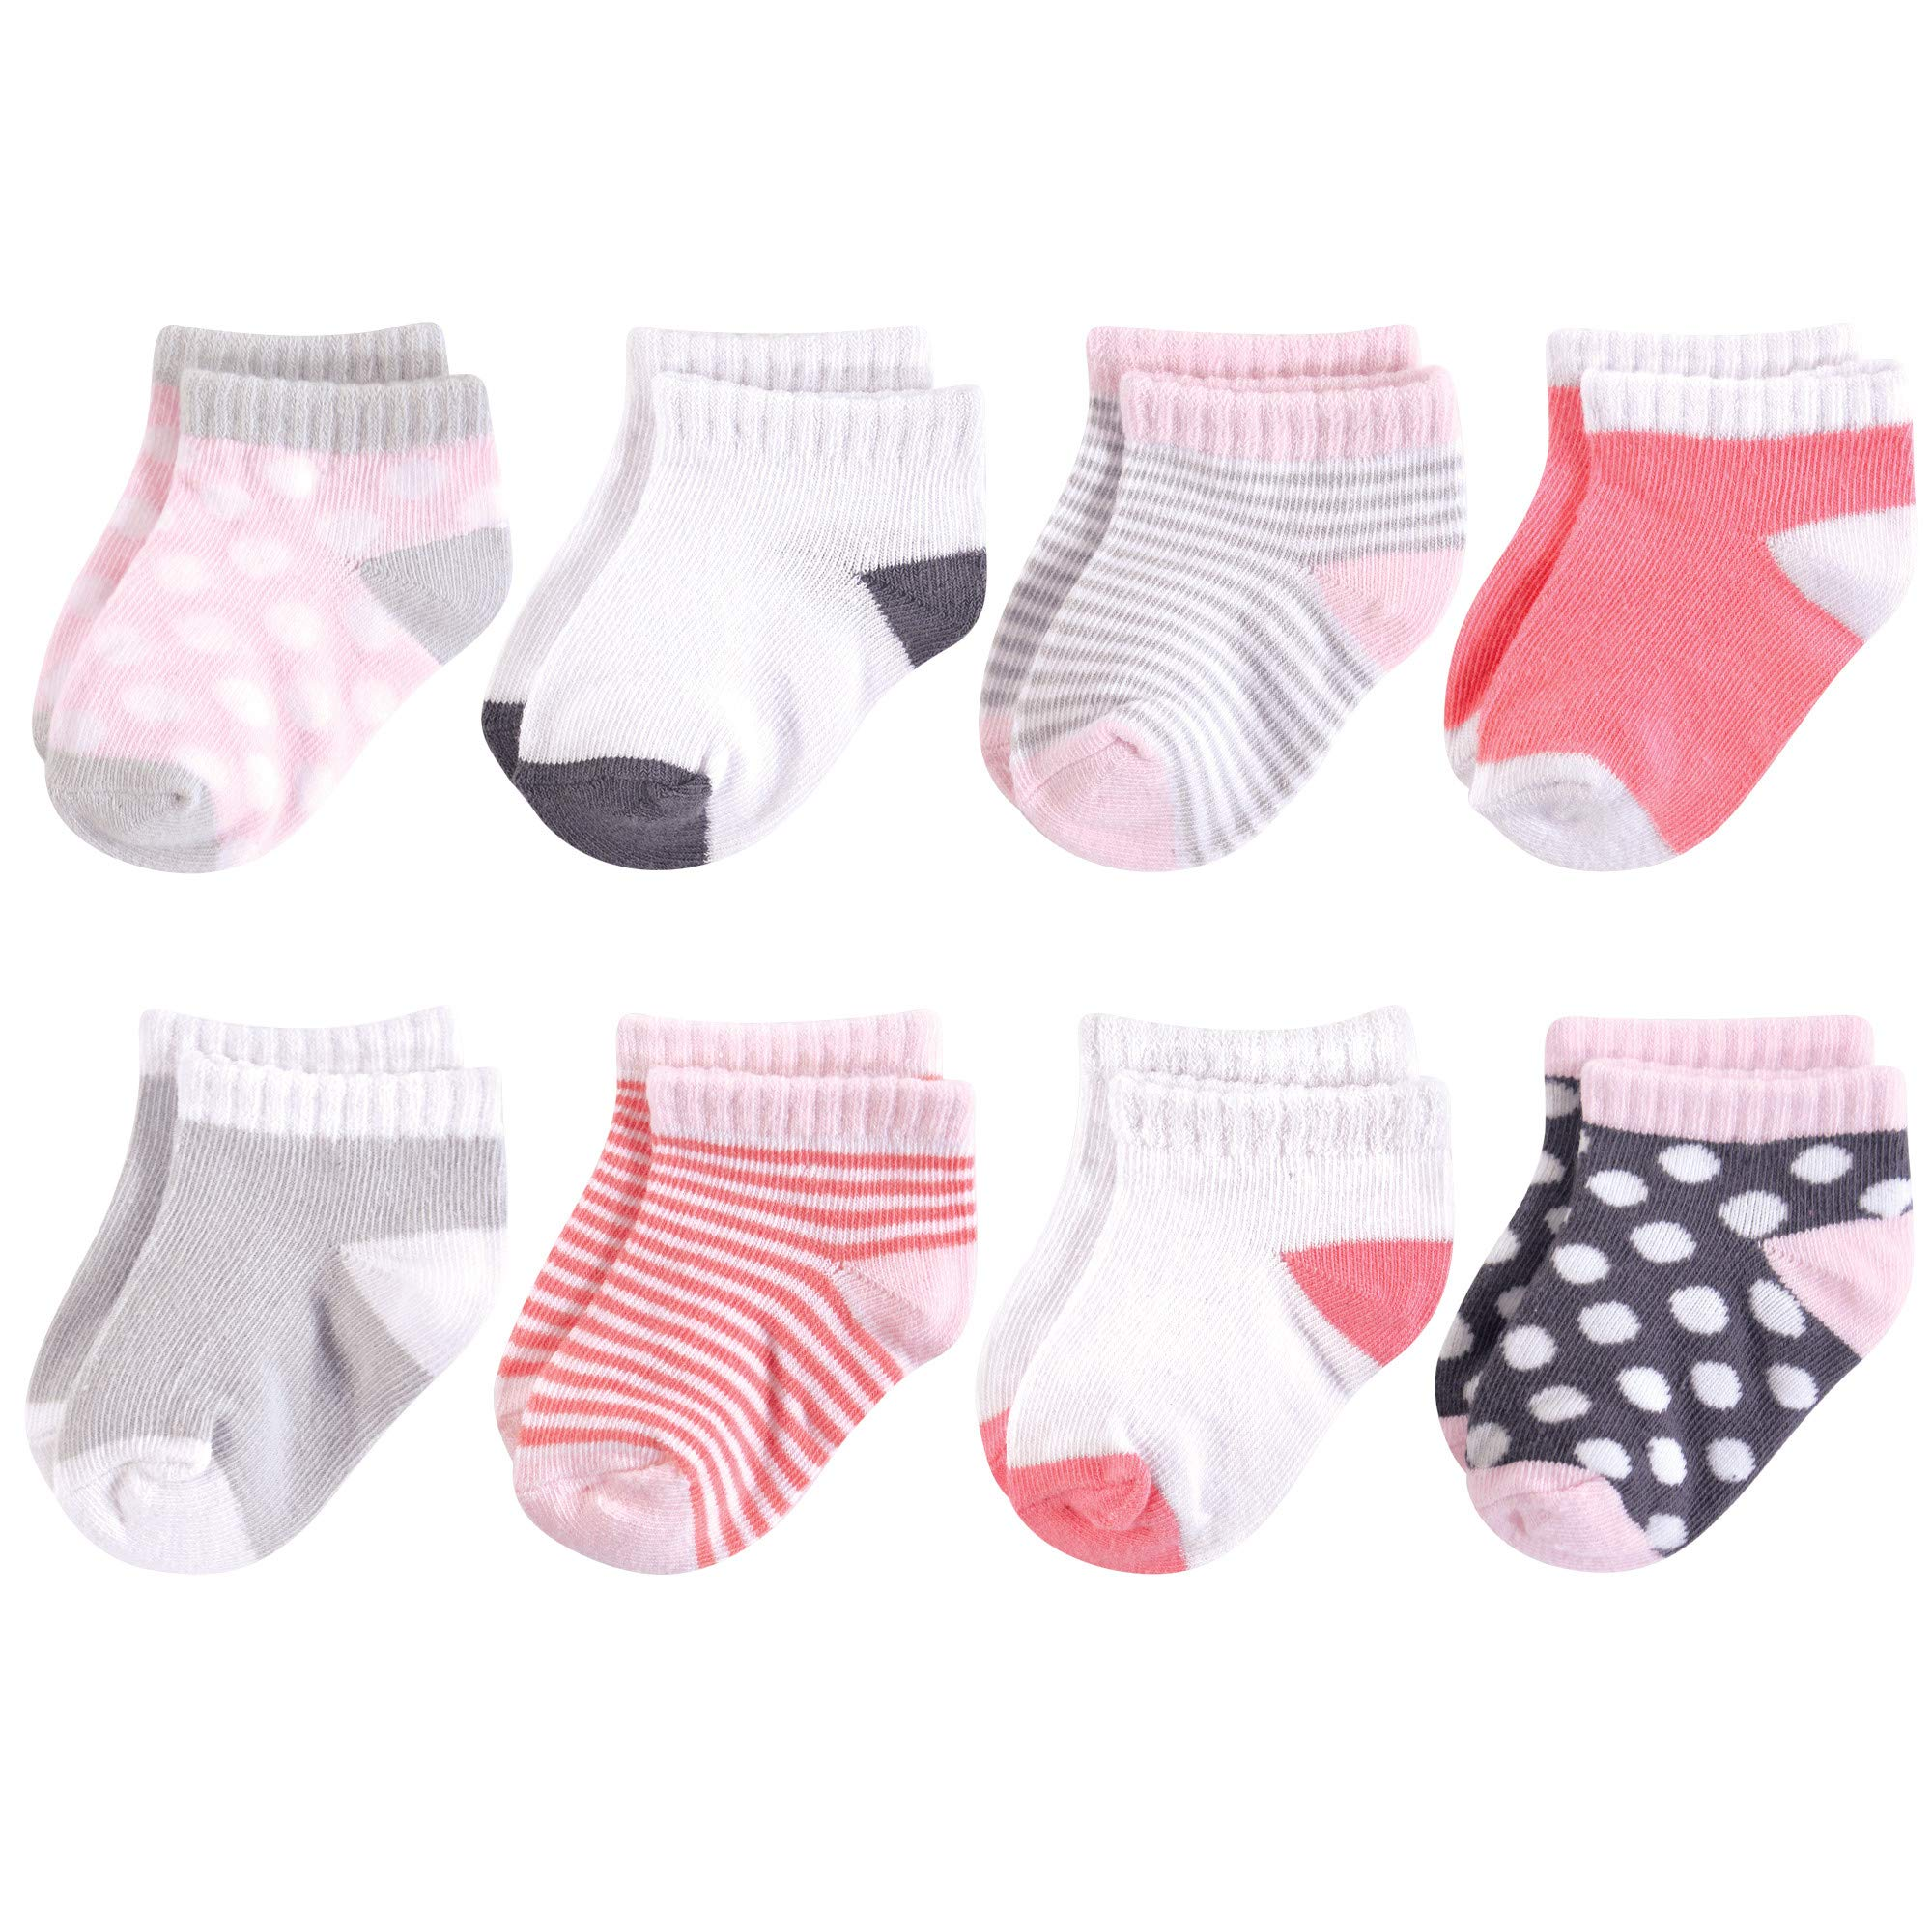 Luvable Friends Basic Socks, 8 Pack, Gray Pink